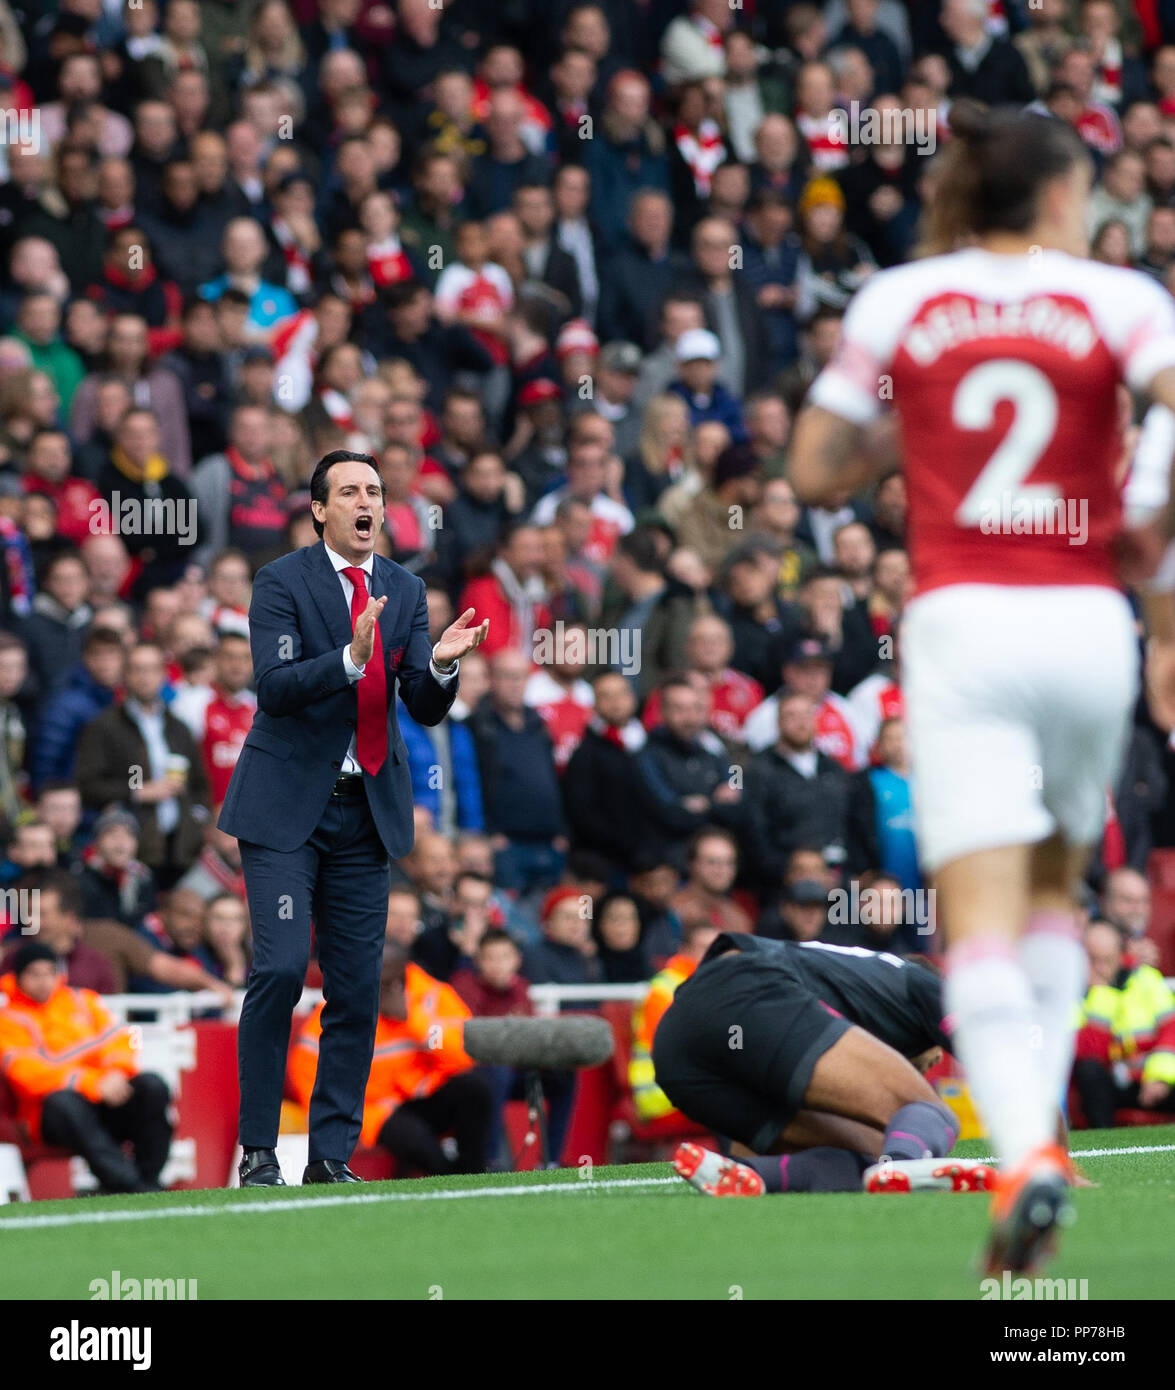 London, UK. 23rd Sep, 2018. Arsenal's Manager Unai Emery gestures during the English Premier League match between Arsenal and Everton at the Emirates Stadium in London, Britain on Sept. 23, 2018. Arsenal won 2-0. Credit: Marek Dorcik/Xinhua/Alamy Live News Stock Photo